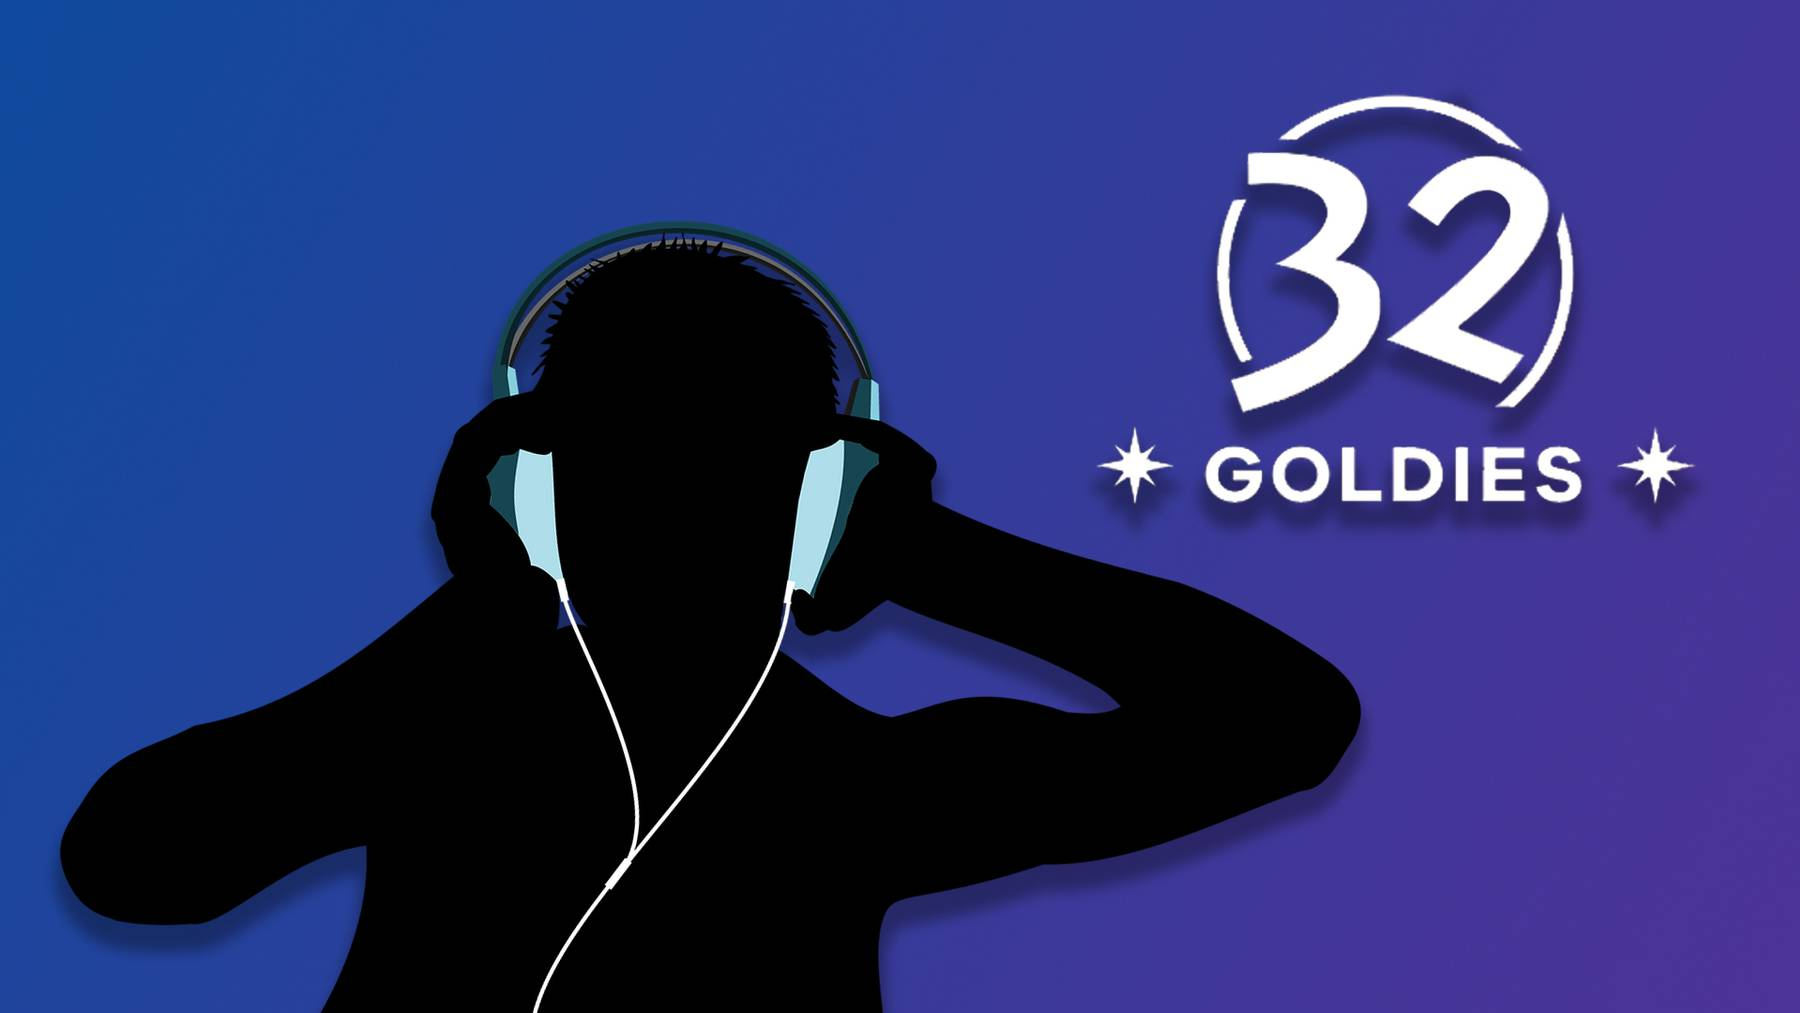 Radio 32 Goldies Channel